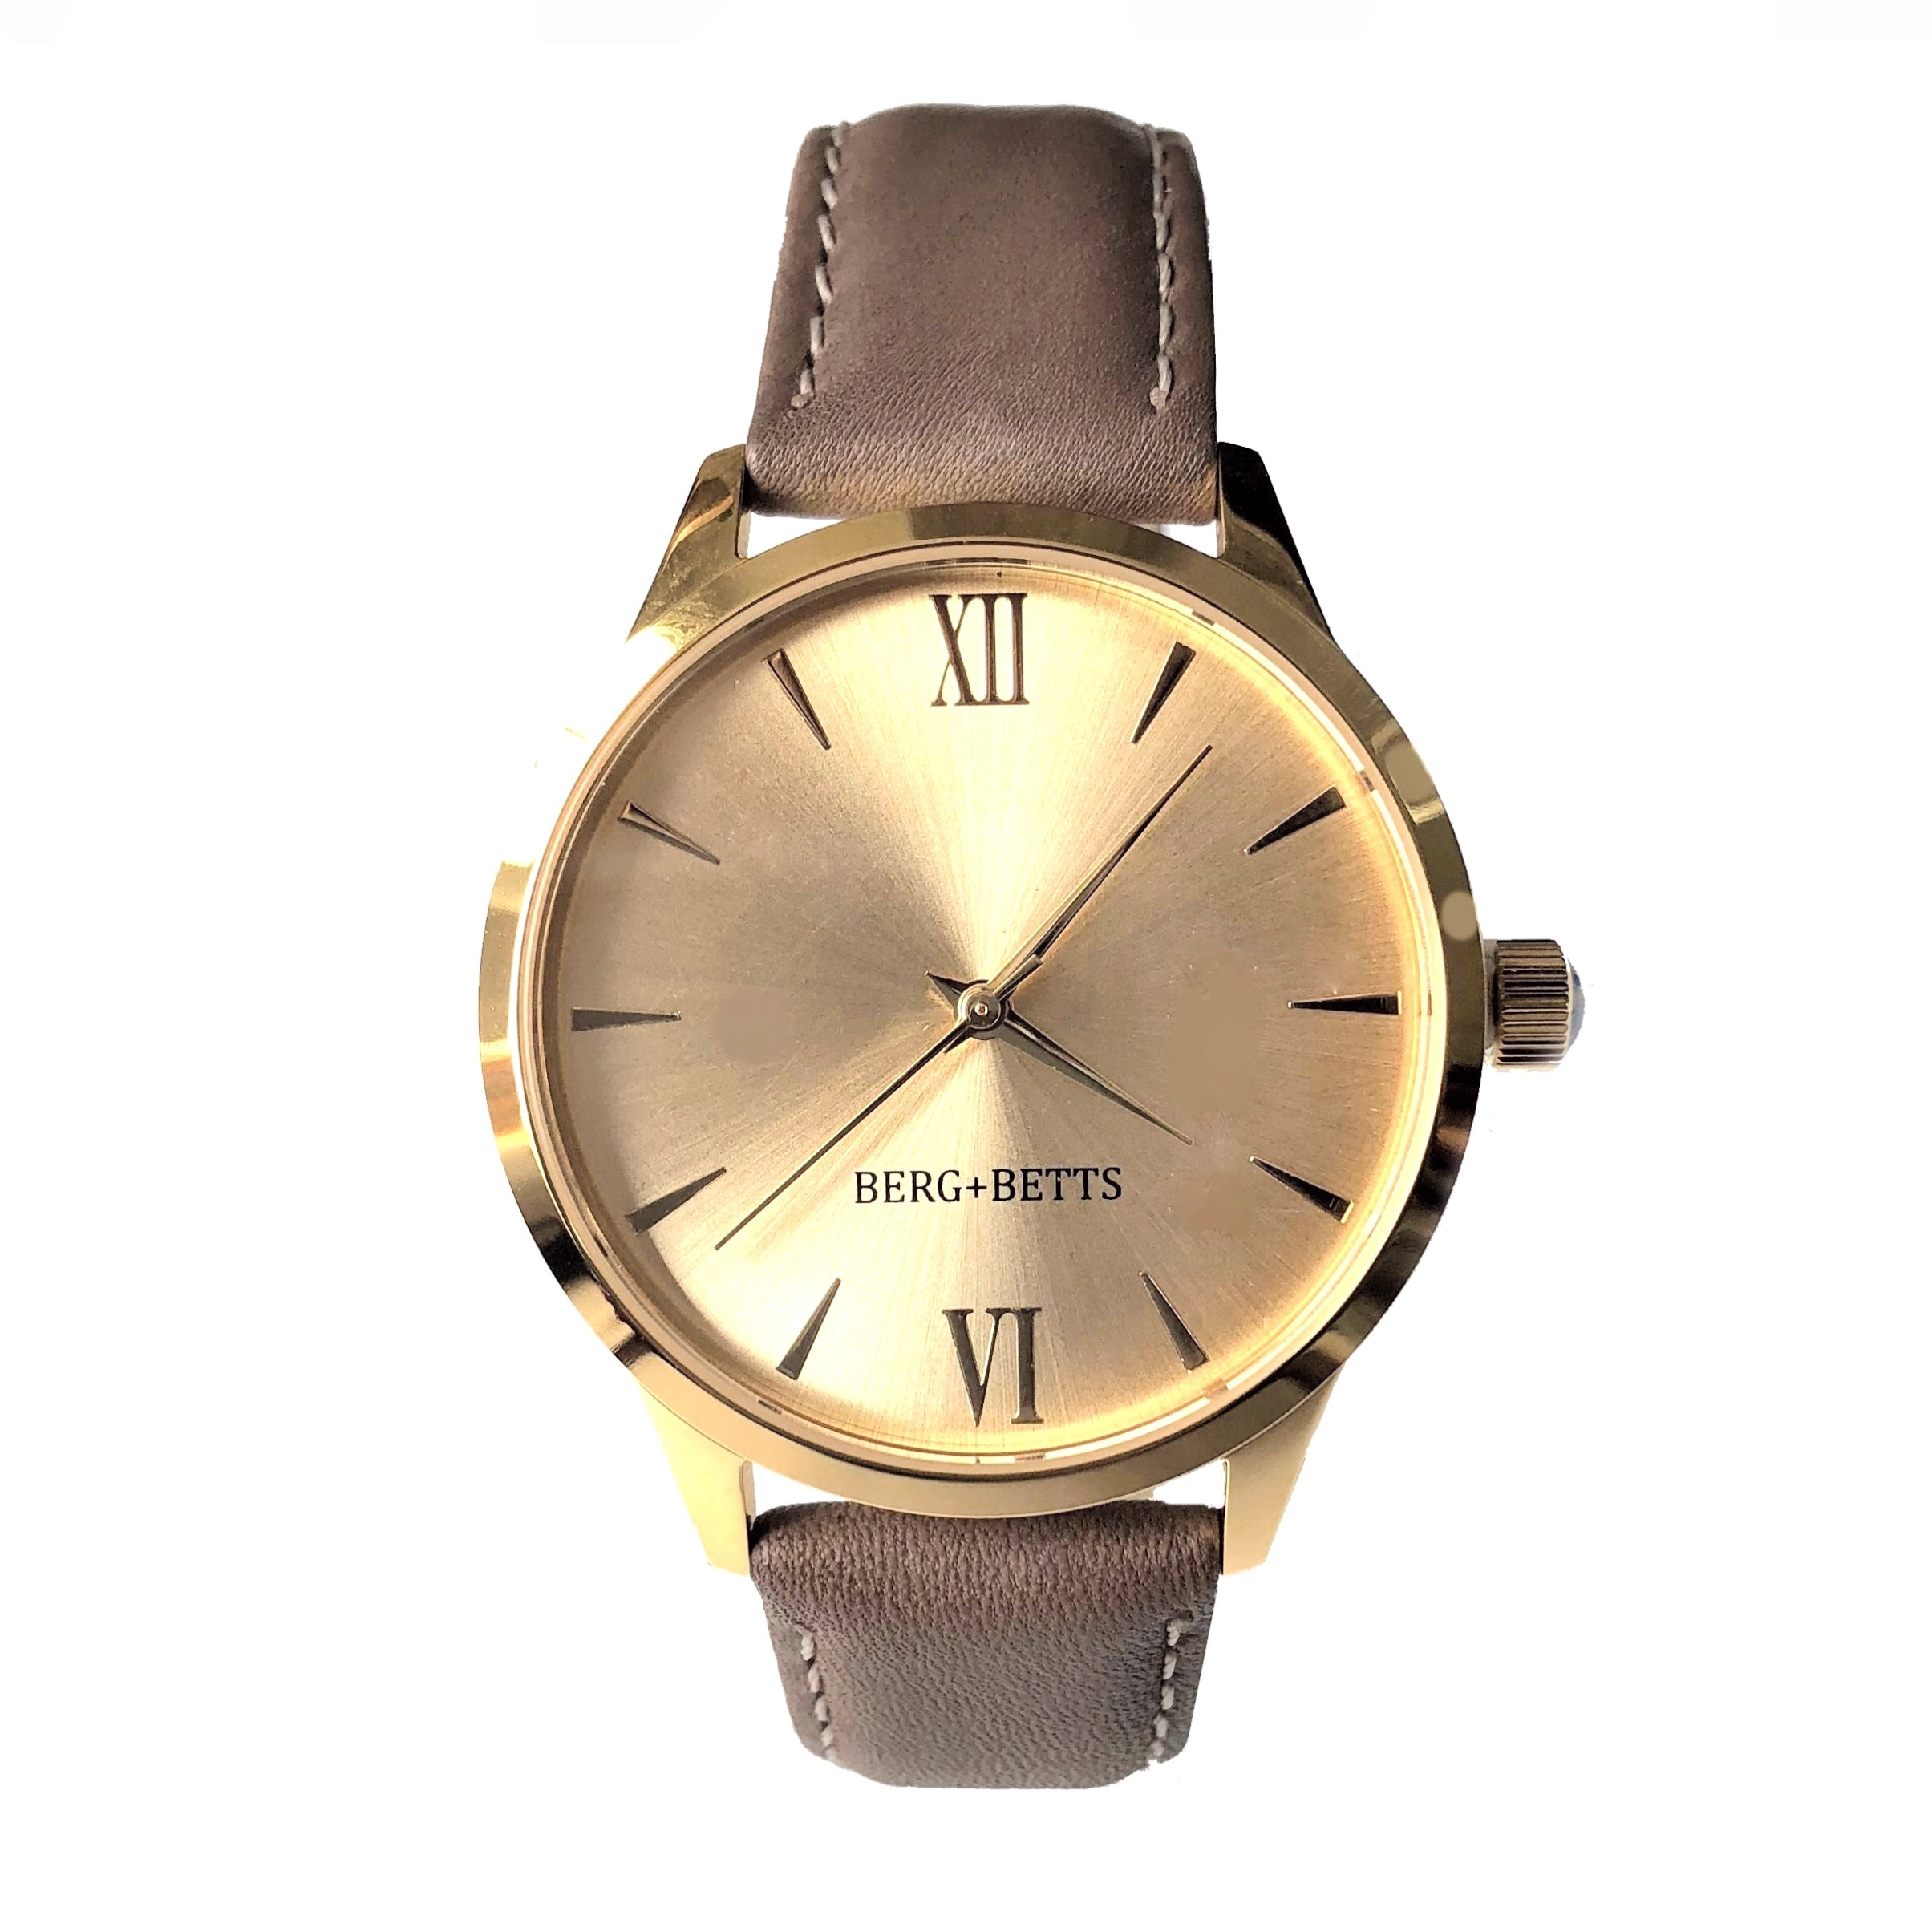 Ethically made Sustainable gold watch from BERG+BETTS